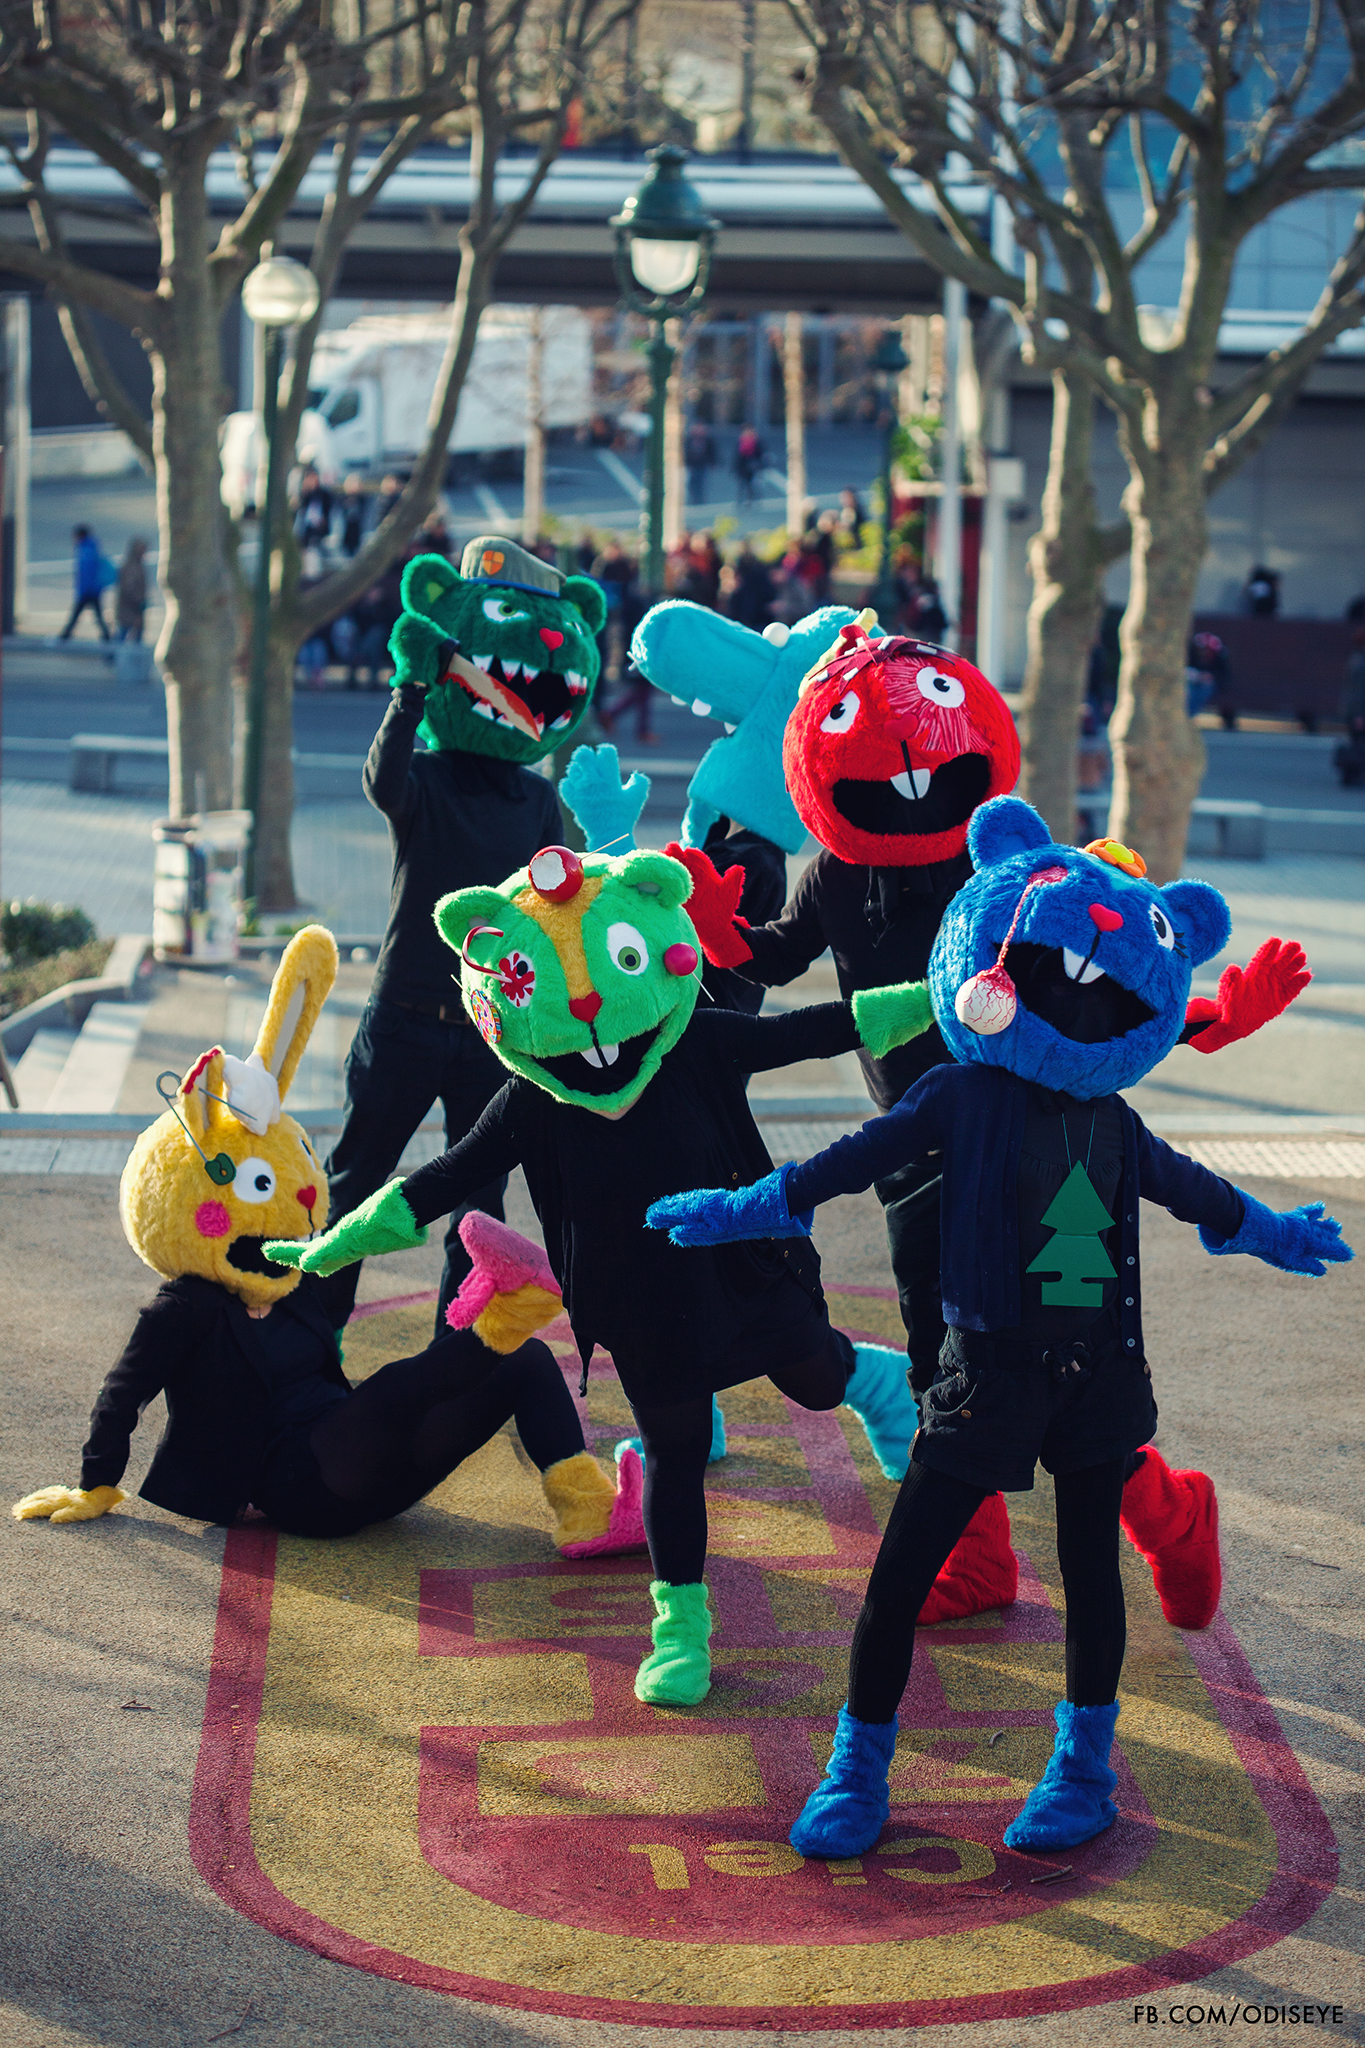 Happy Tree Friends by Chocosplay on DeviantArt